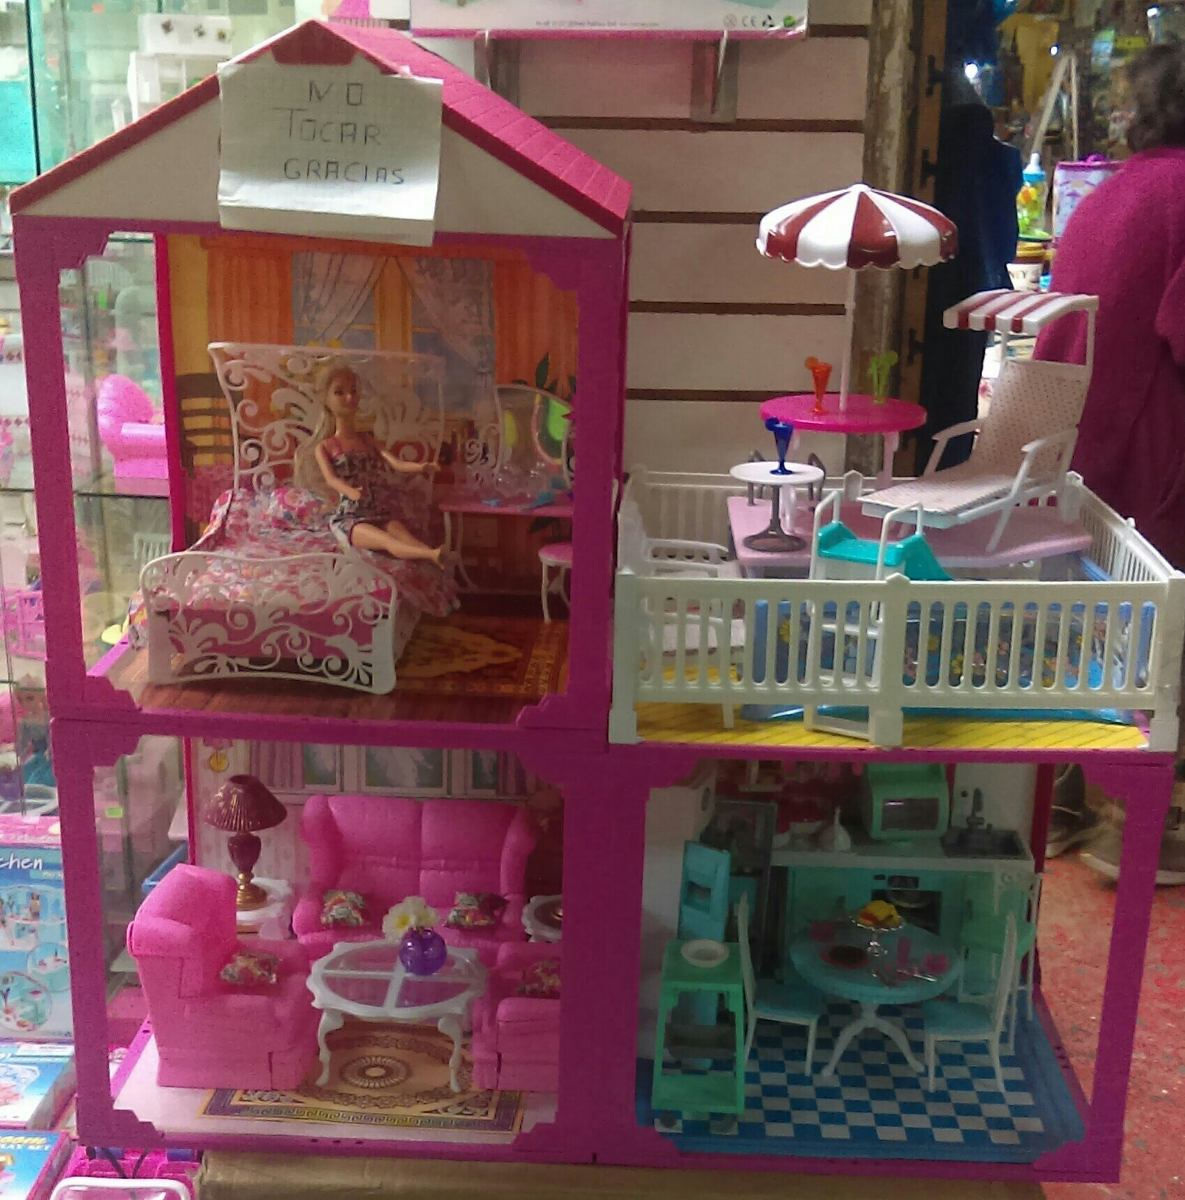 Casa de 2 pisos amoblada set barbie s 210 00 en - Supercasa de barbie ...